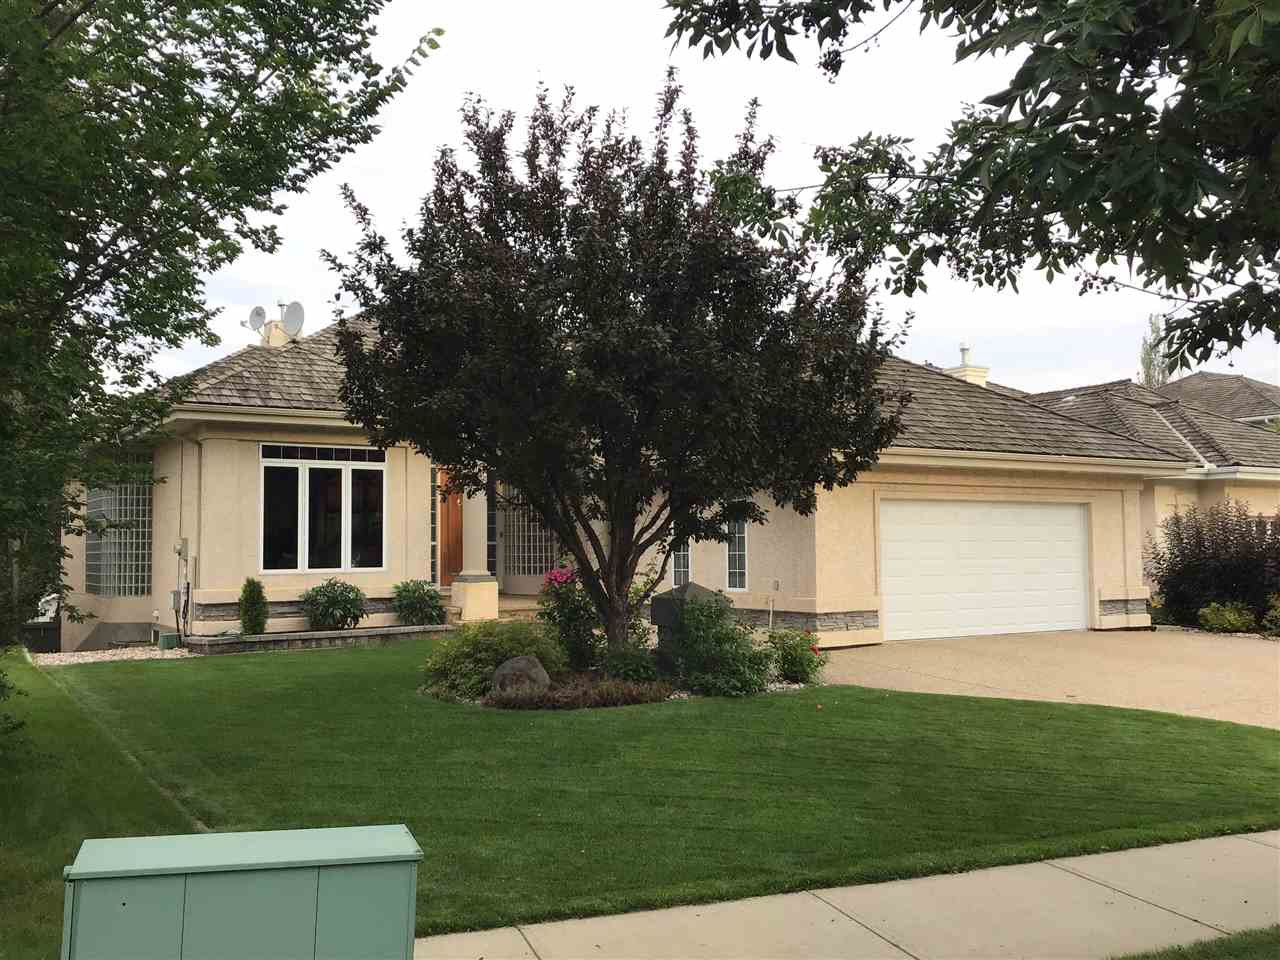 Main Photo: 11 Knights Court: St. Albert House for sale : MLS®# E4168974